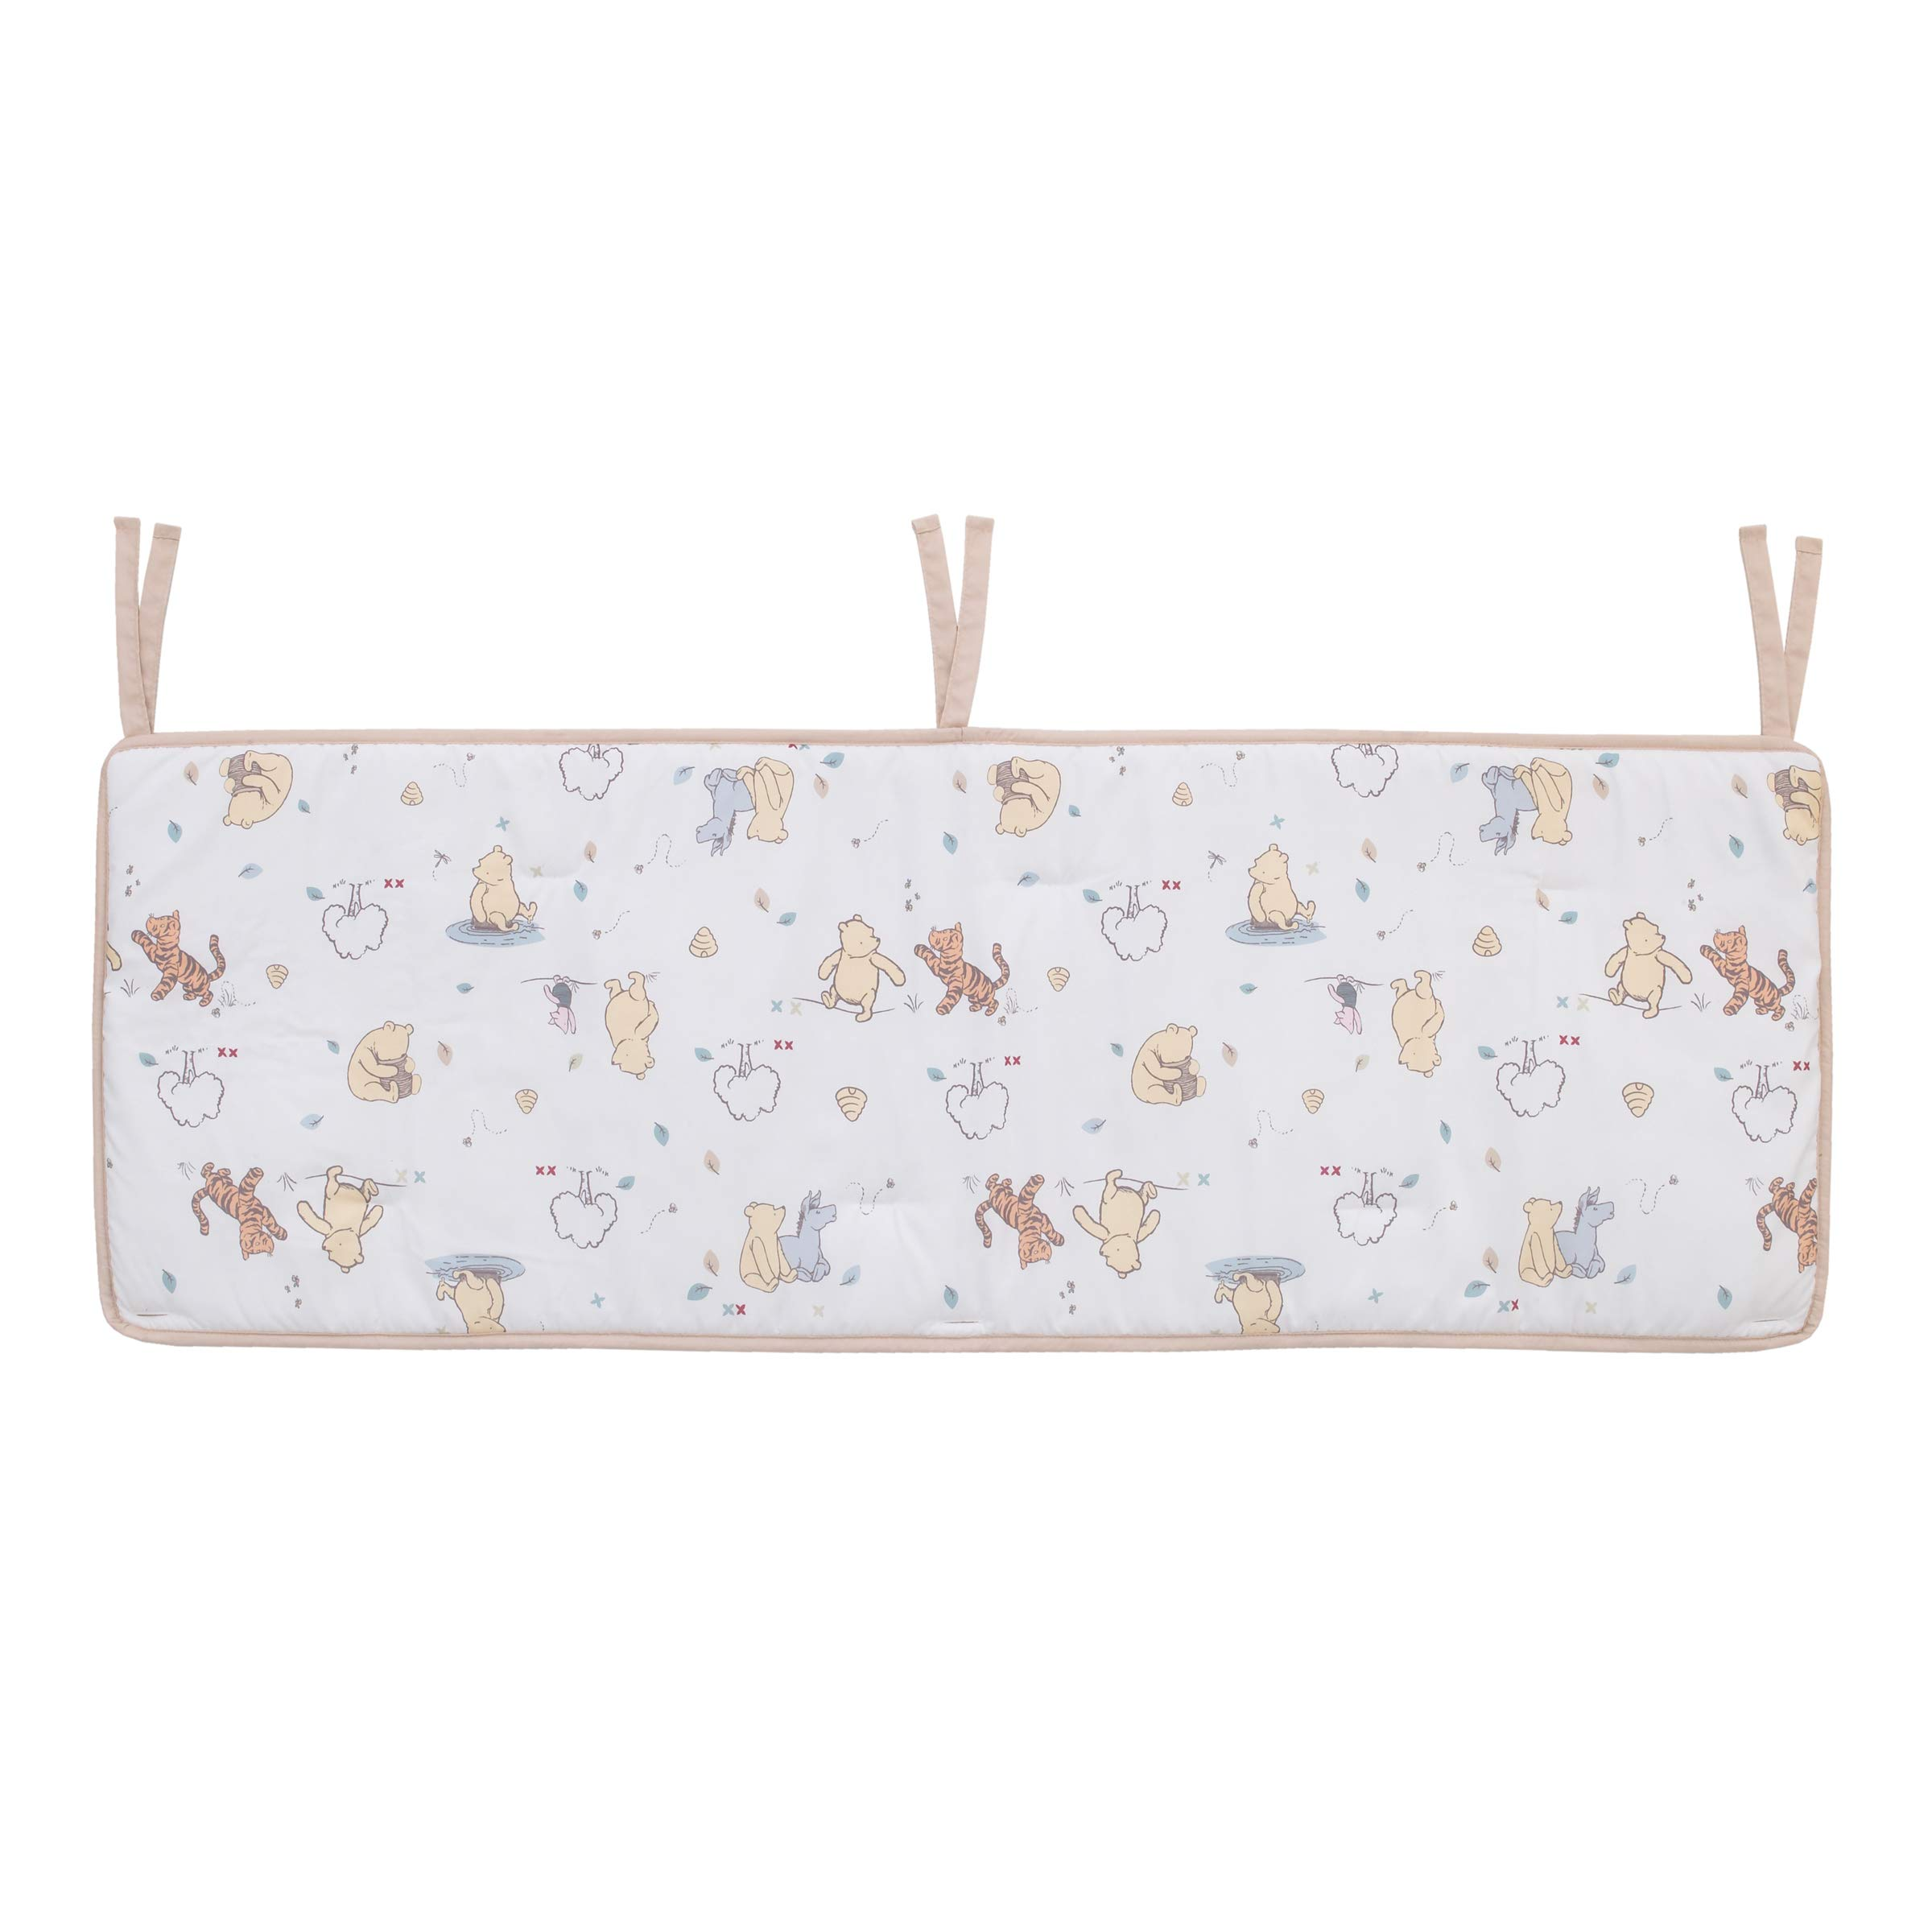 Disney Winnie The Pooh Crib Rail Guard Cover with Ties by Disney